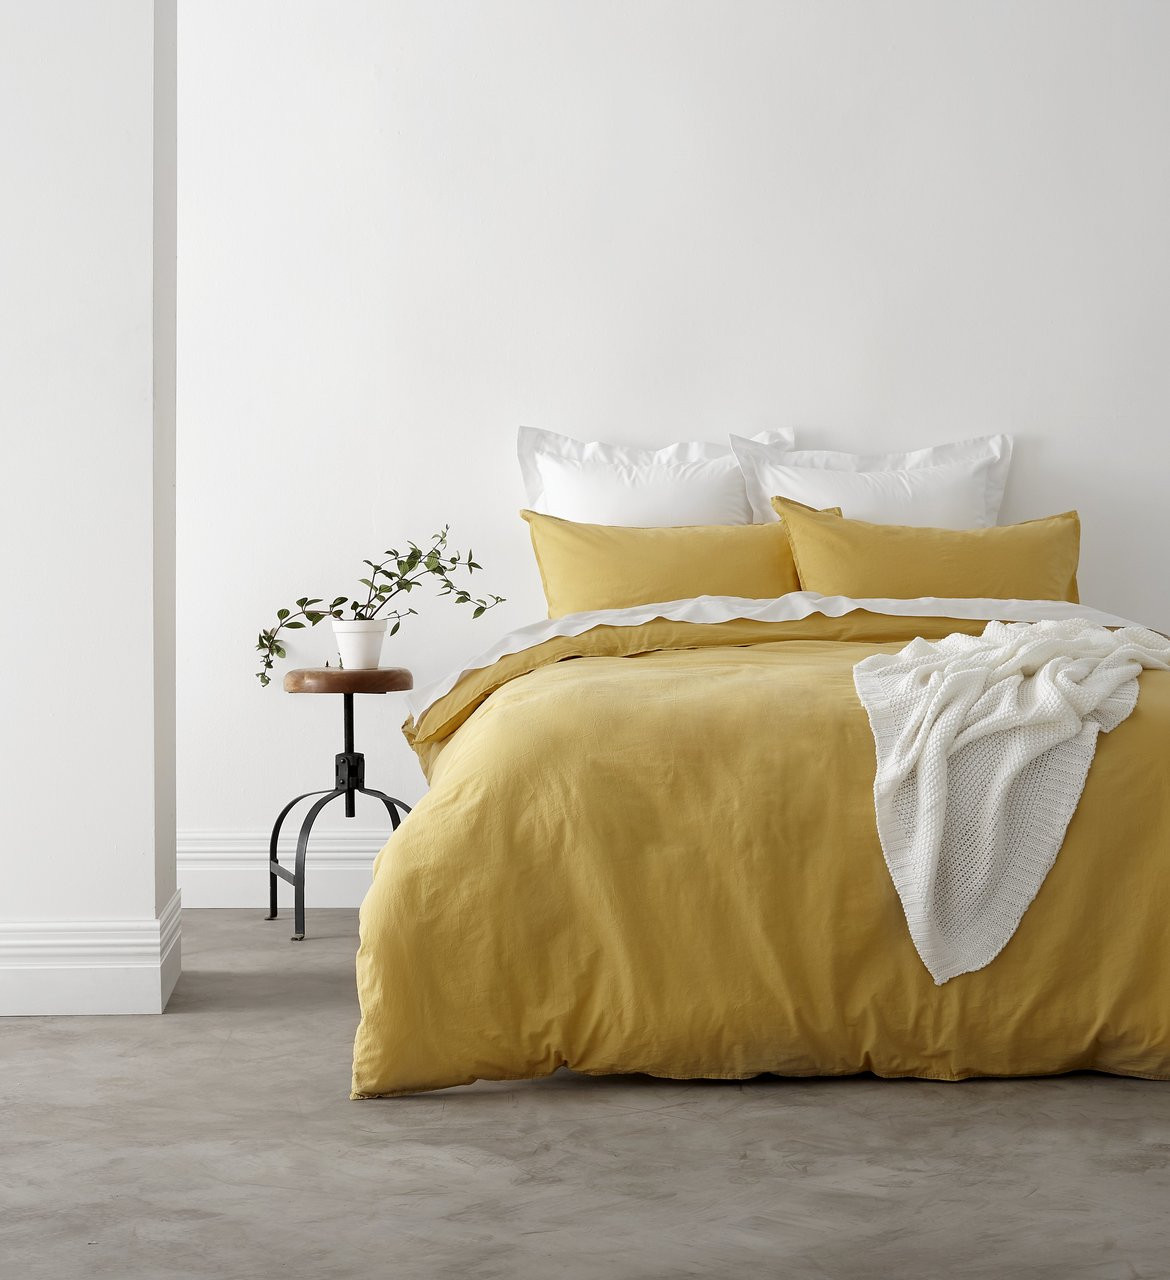 Bon In 2 Linen Vintage Washed King Bed Quilt Cover Set | Yellow